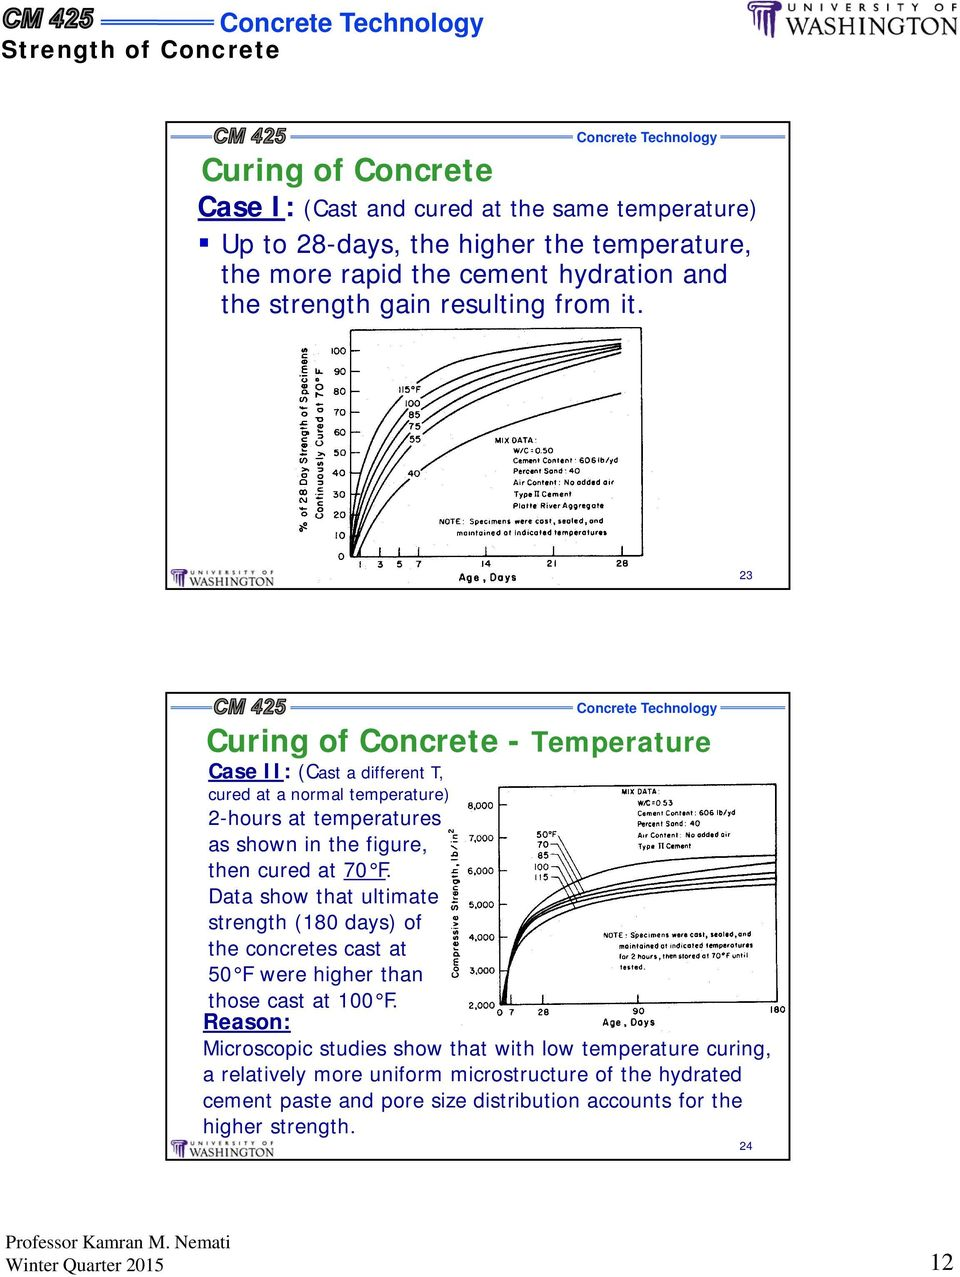 23 Curing of Concrete - Temperature Case II: (Cast a different T, cured at a normal temperature) 2-hours at temperatures as shown in the figure, then cured at 70 F.